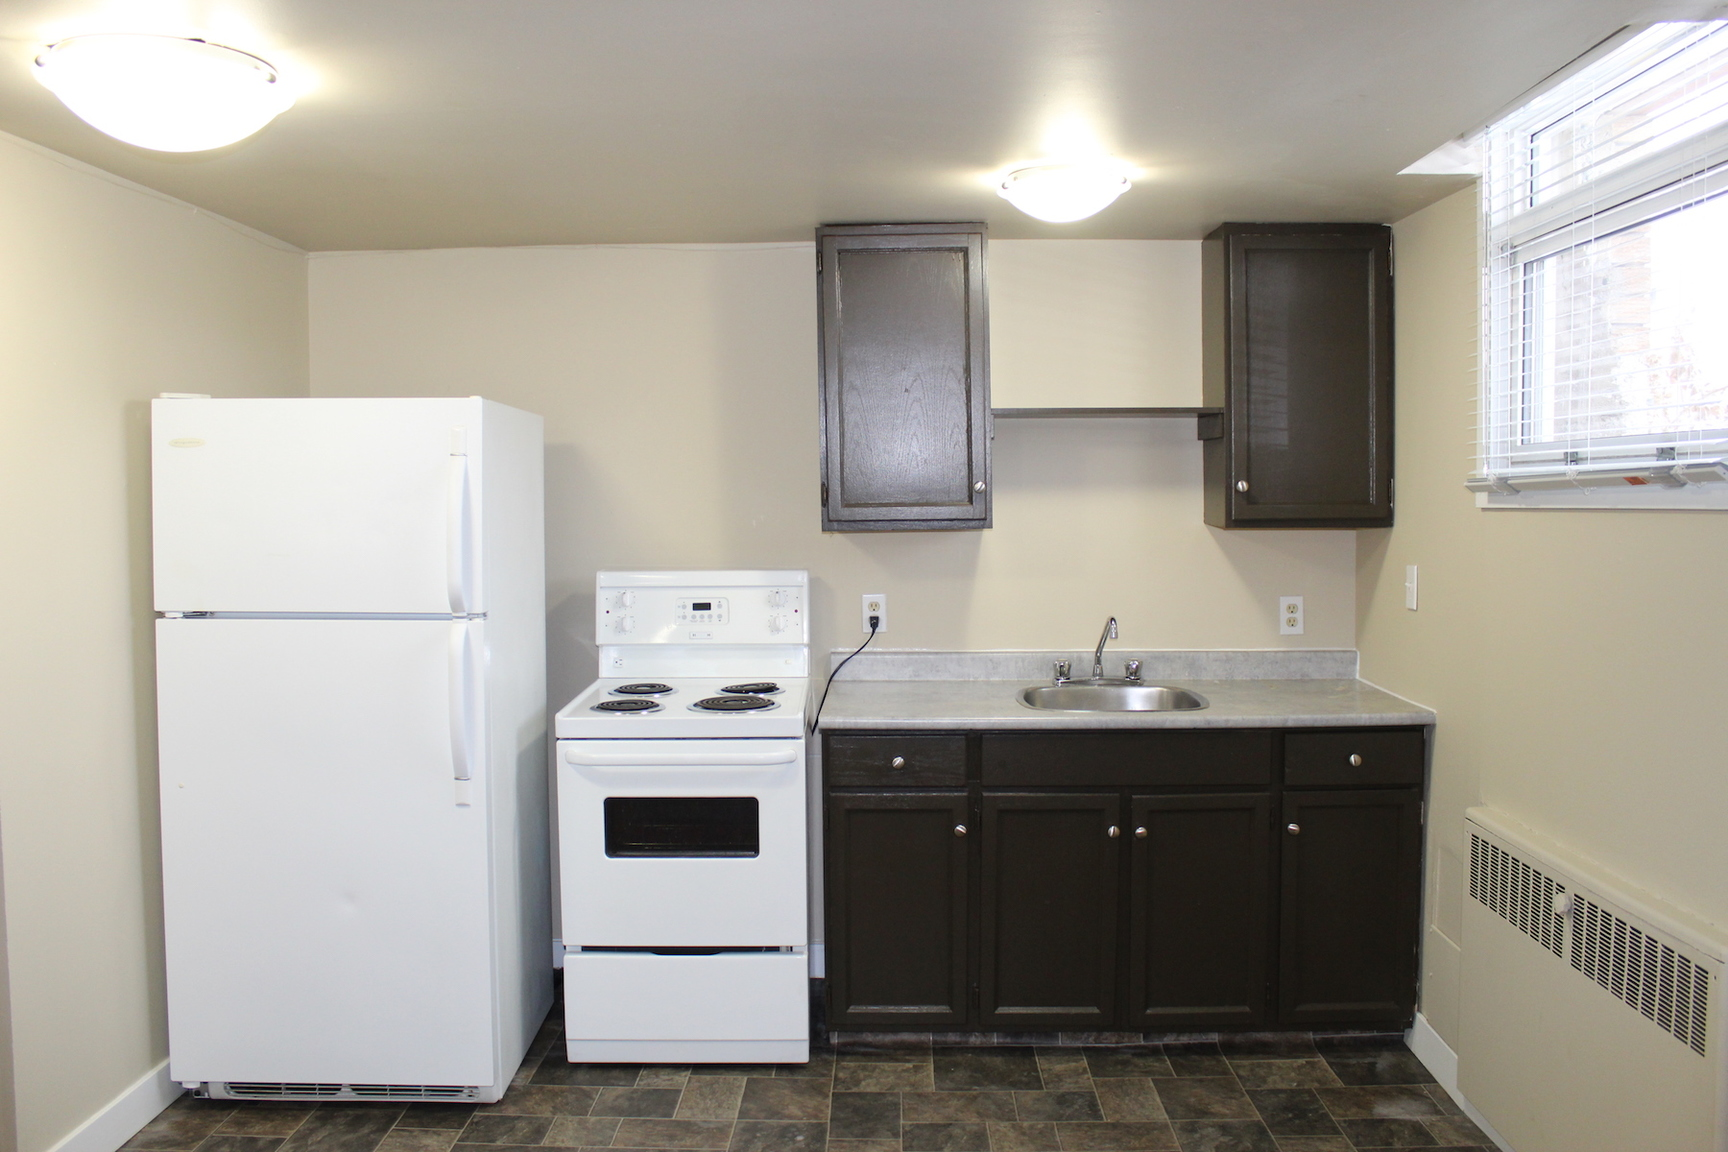 2619 17A St SW, Calgary, AB - $875 CAD/ month